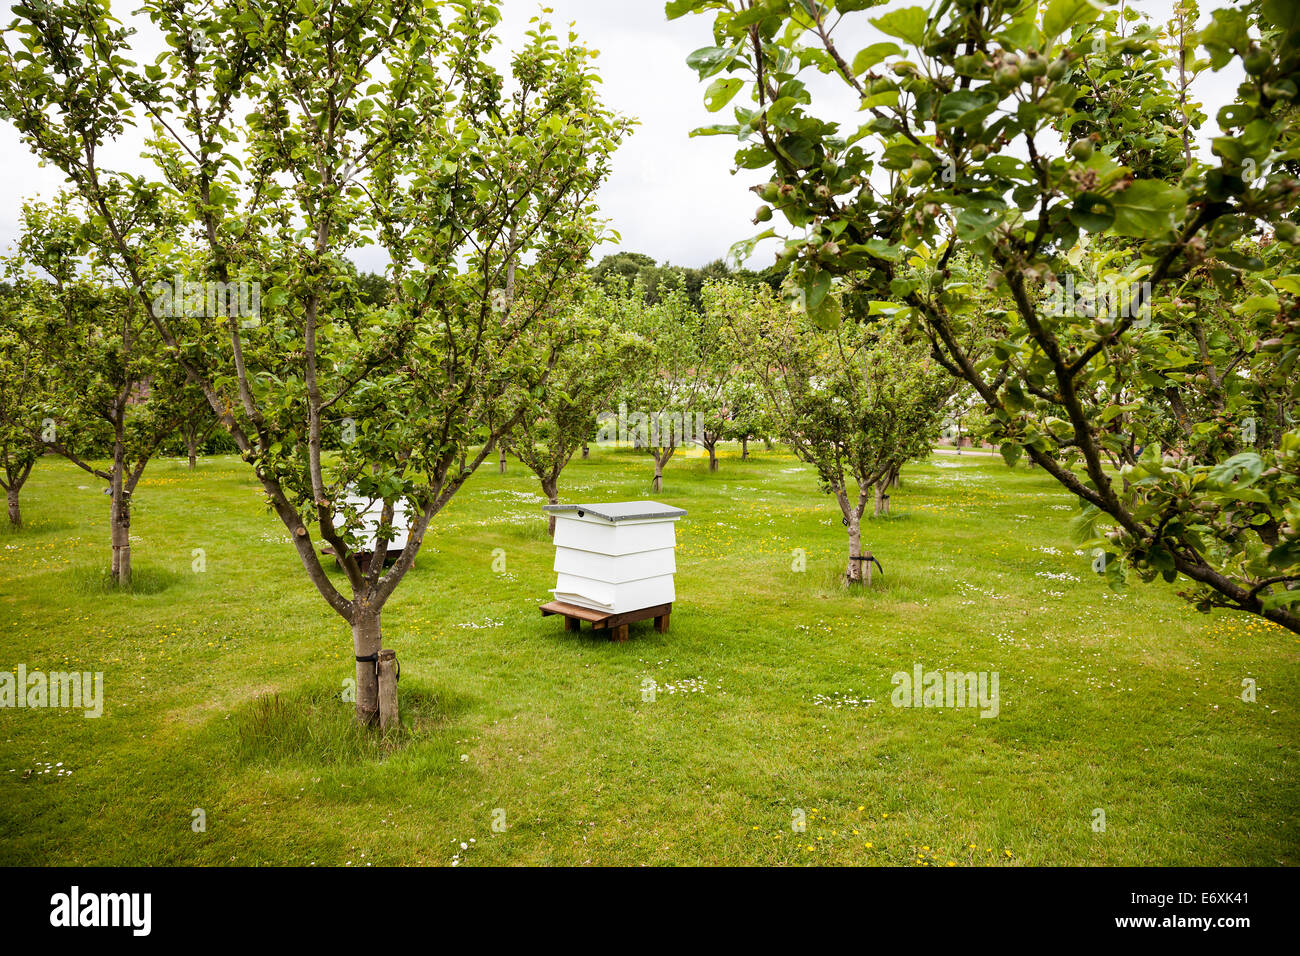 Traditional wooden Bee hives in the kitchen garden orchard at Tatton Hall, Tatton Park gardens Tatton, Cheshire, - Stock Image